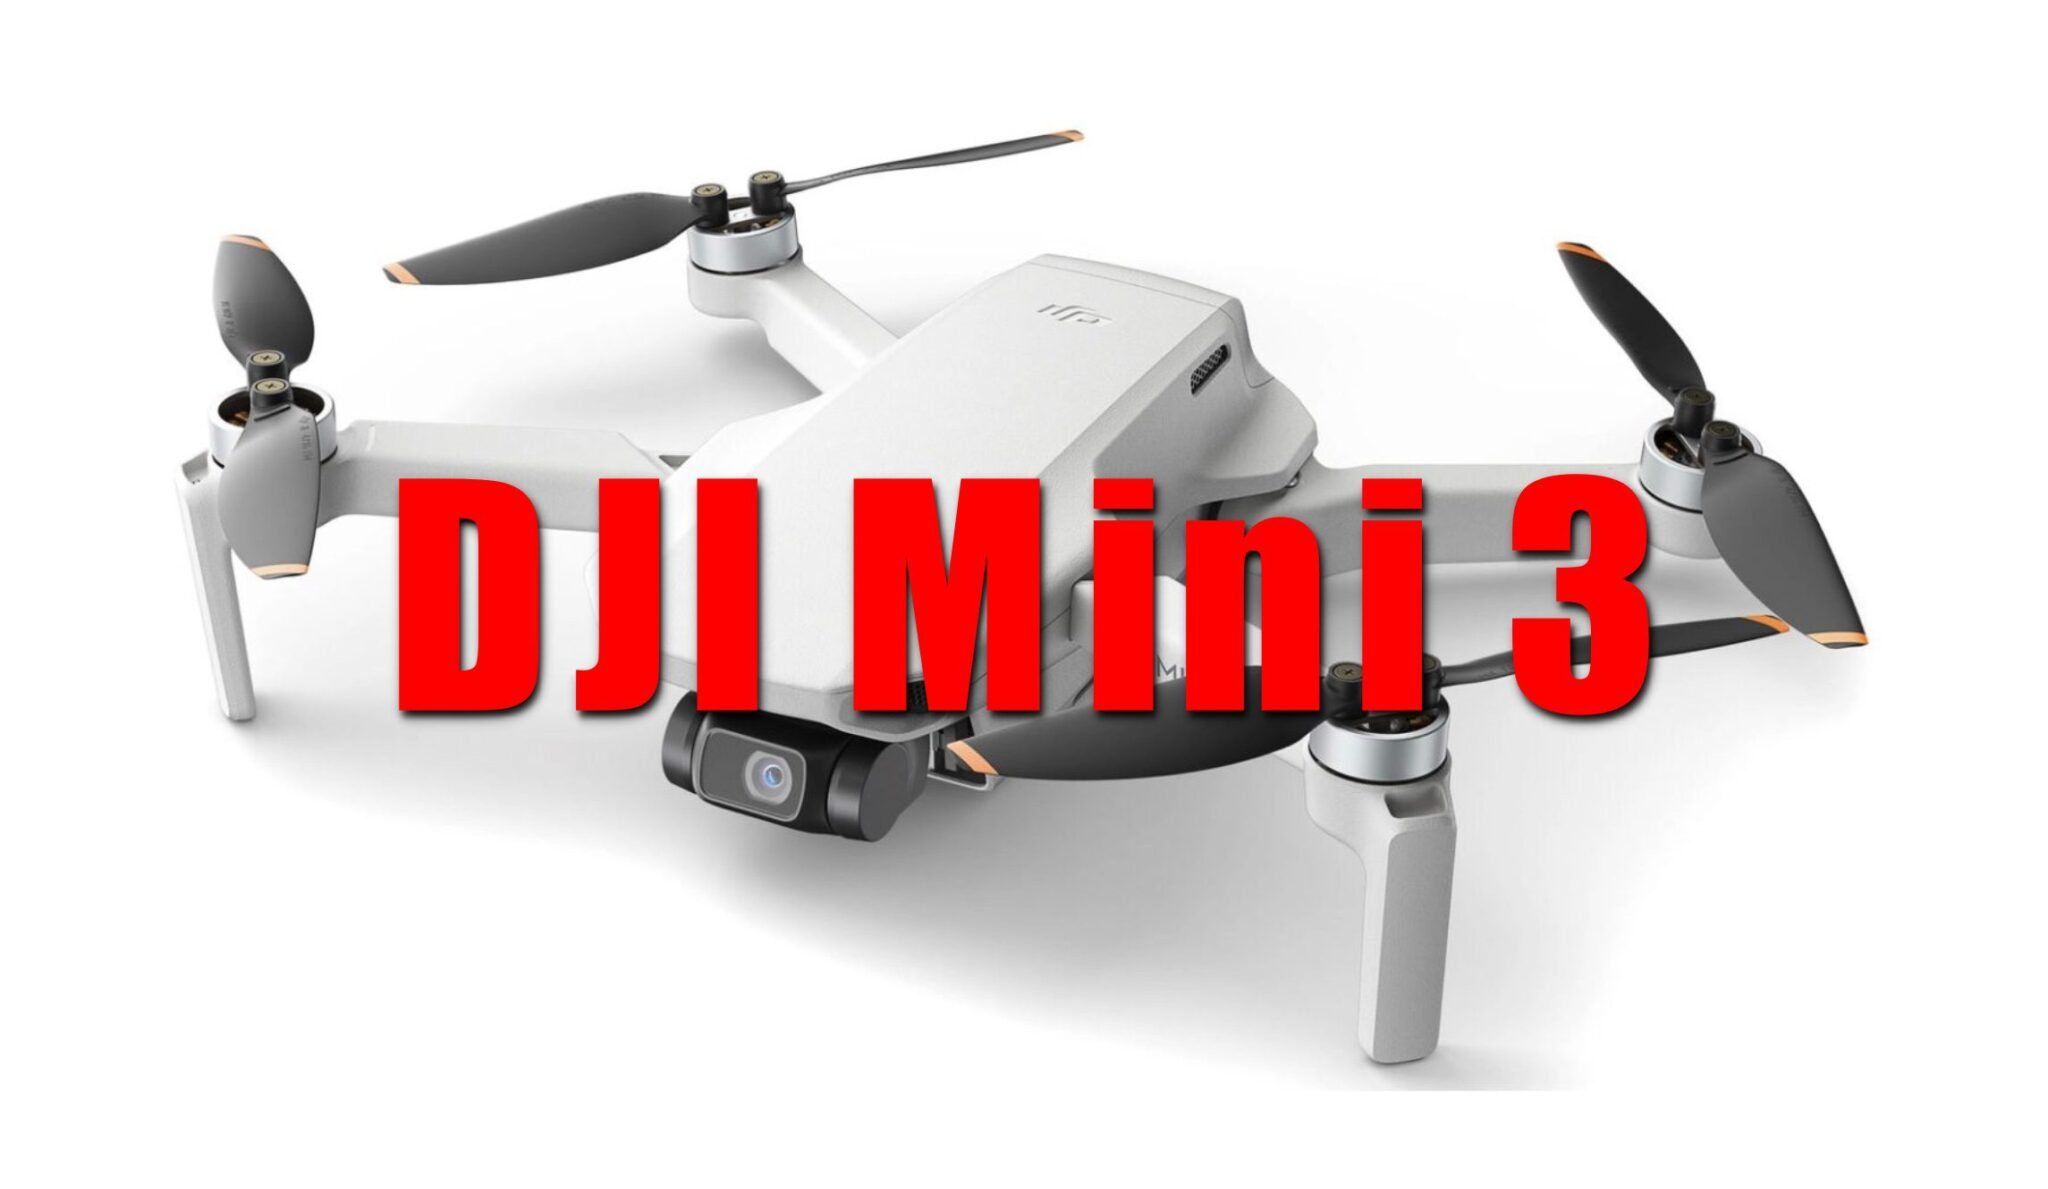 DJI Mini 3 drone likely to arrive on November 15th